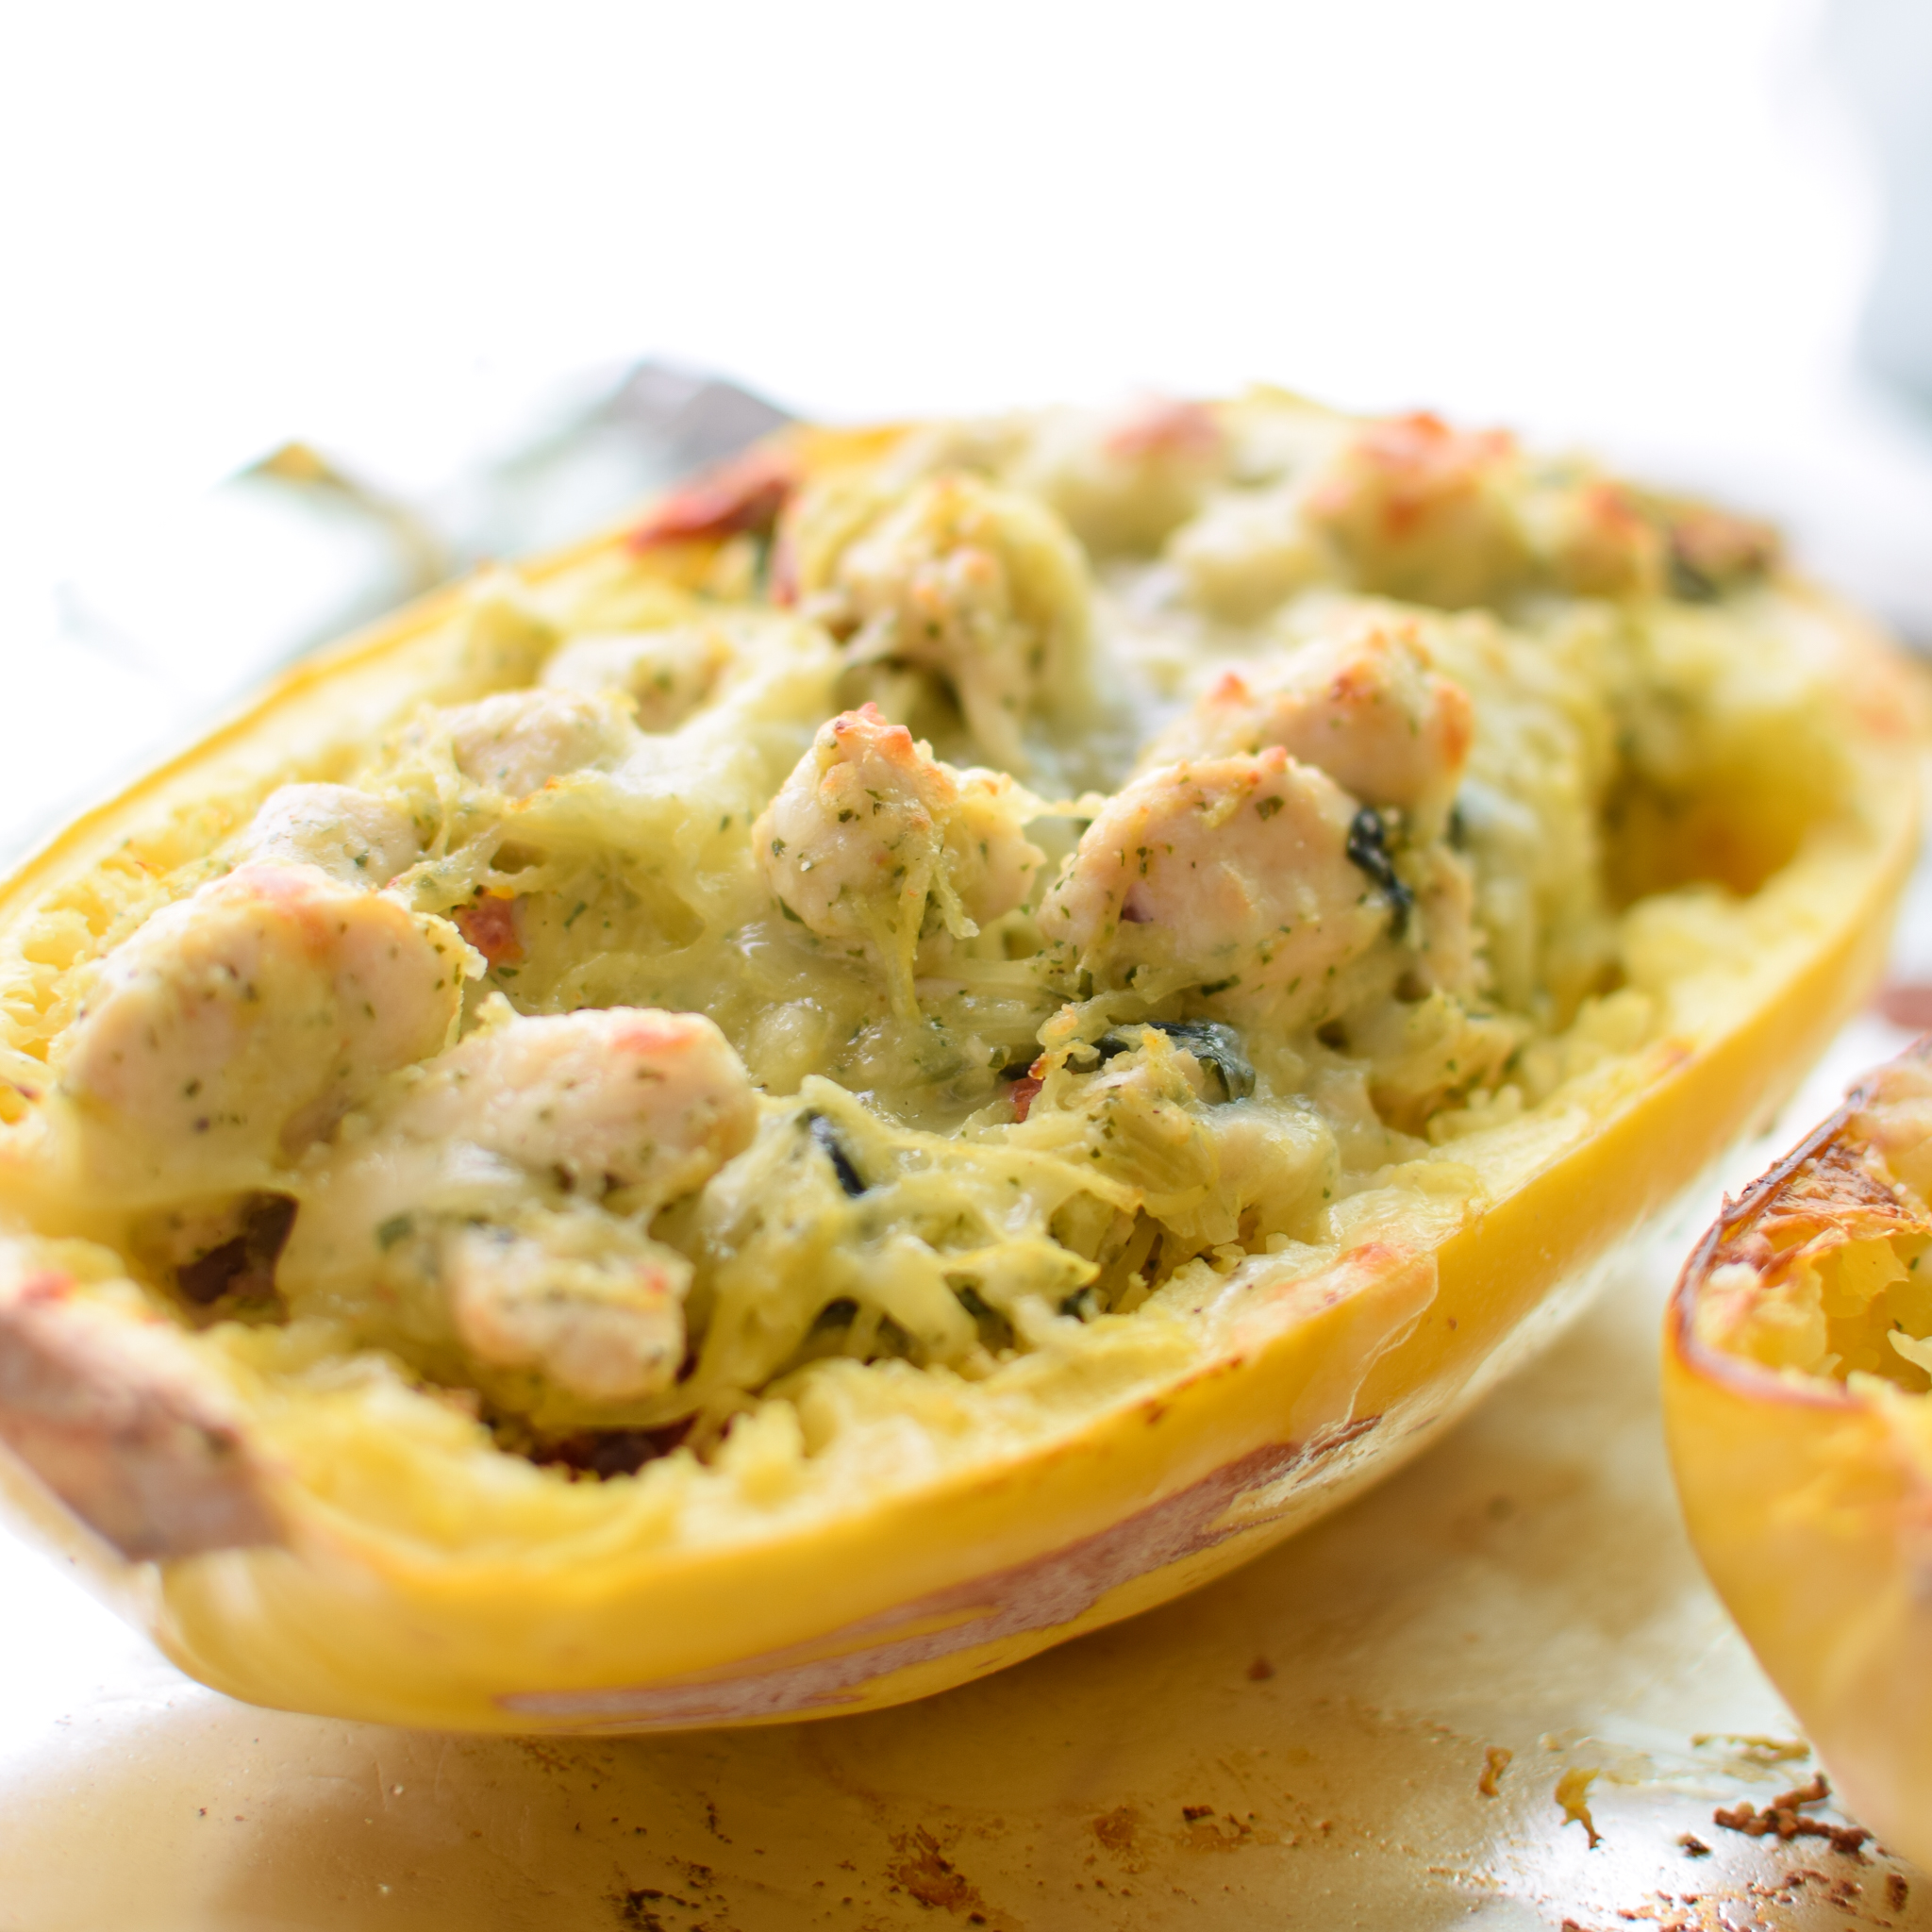 Pesto Chicken Stuffed Spaghetti Squash - Pesto, chicken, spinach, and a little greek yogurt for creamy goodness! Super healthy dinner for two! - ProjectMealPlan.com